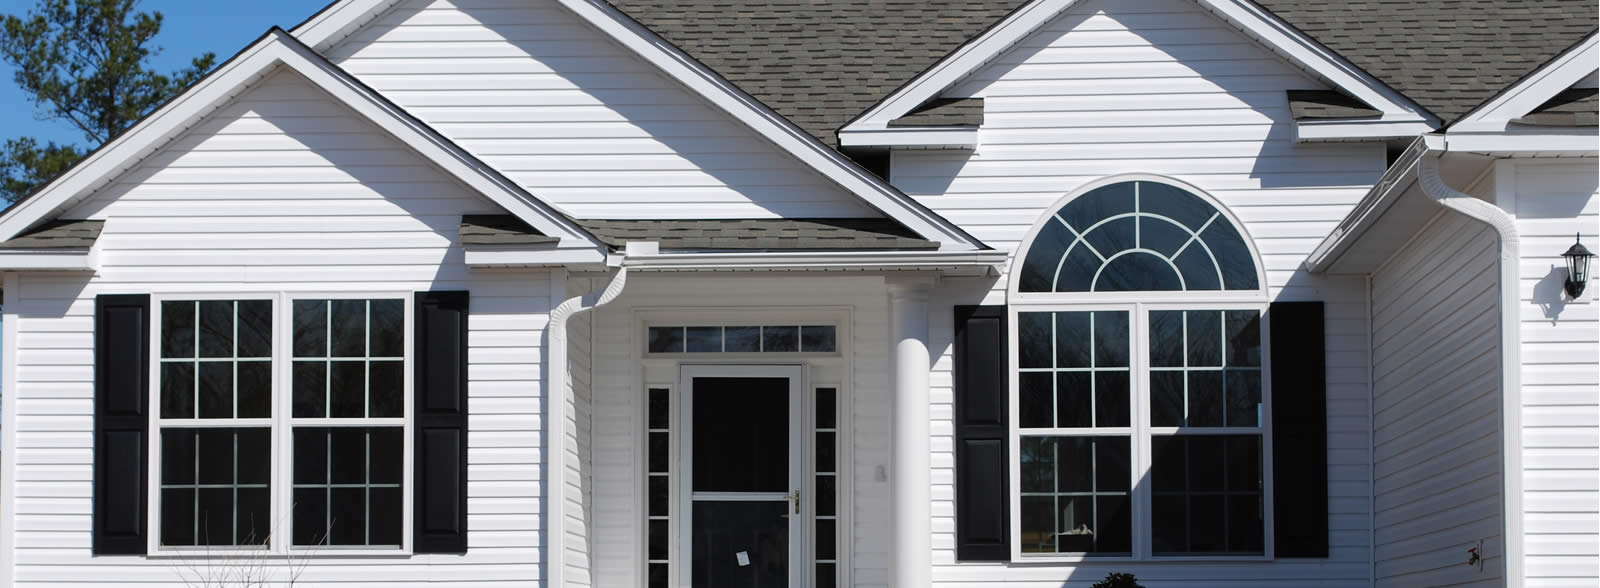 Superior Exterior Home Improvement Services. From Vinyl Siding In Las Vegas,  NV To Roof Repair ...